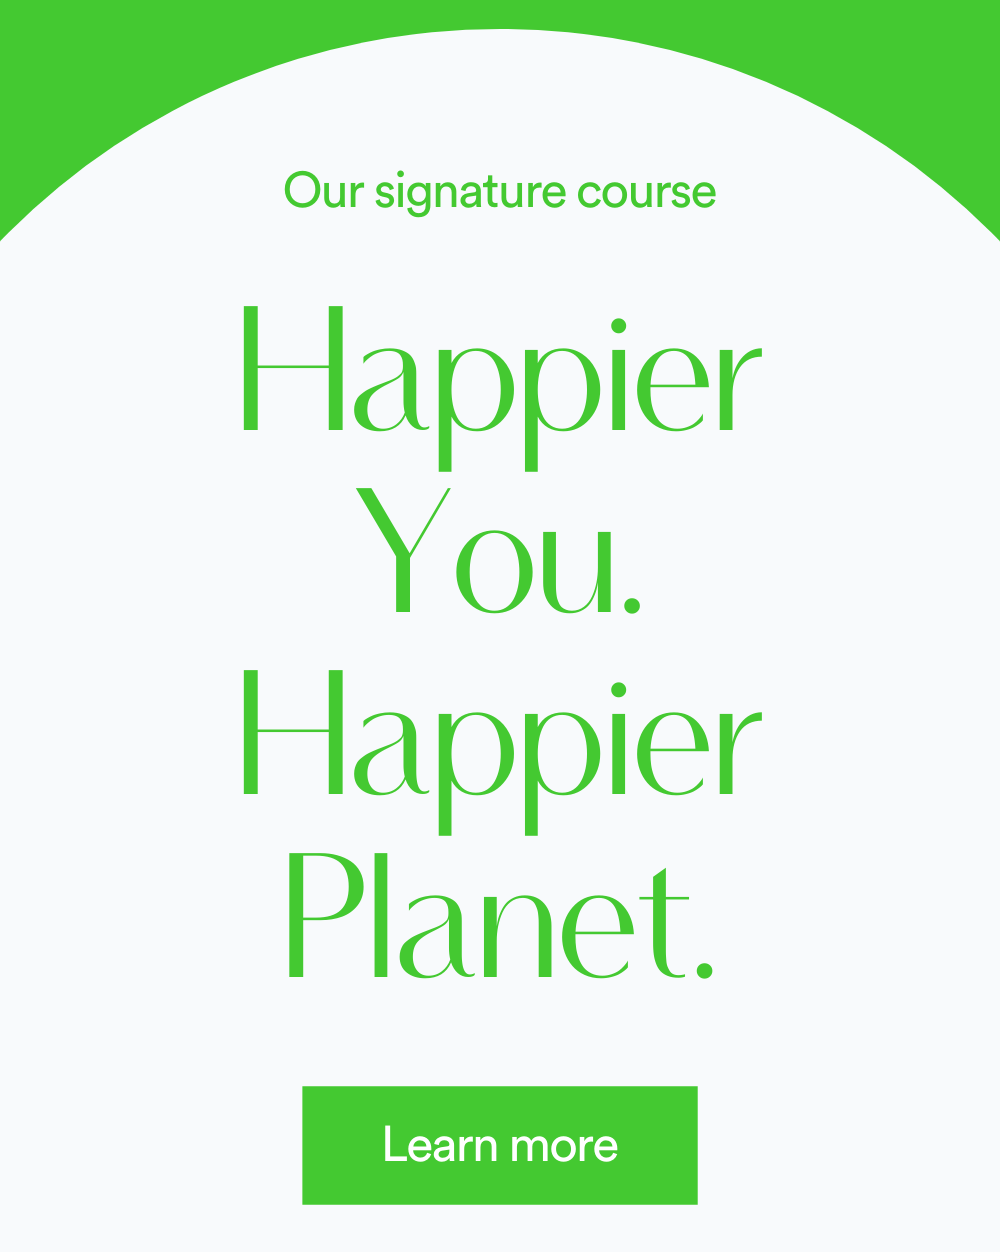 Our signature course